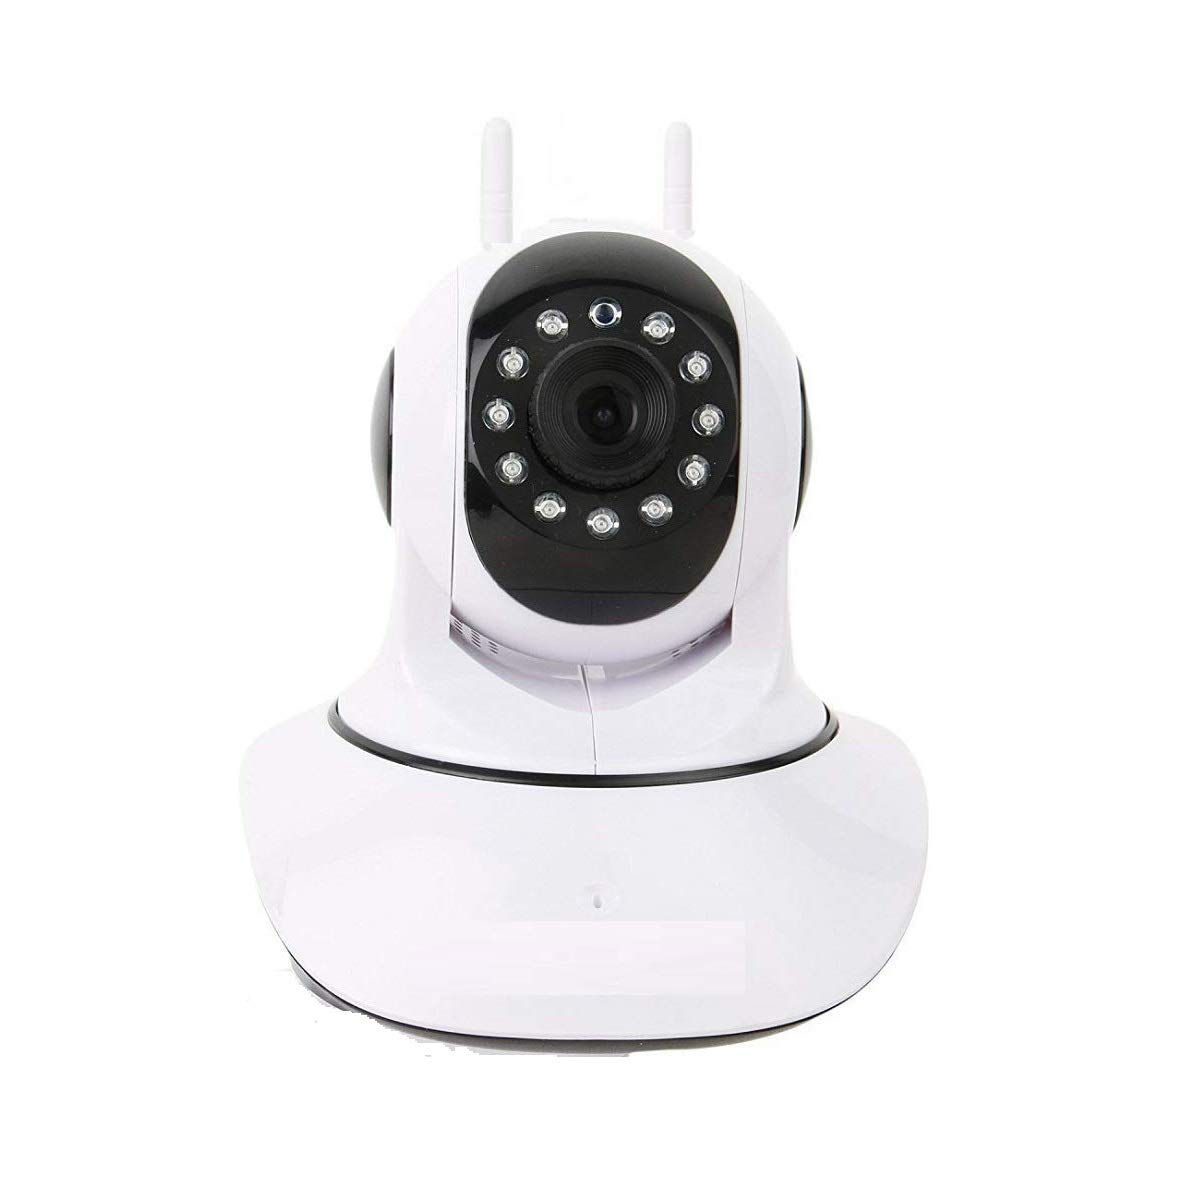 Image result for FINICKY-WORLD V380 Wireless HD IP Security Camera Dual Antenna: